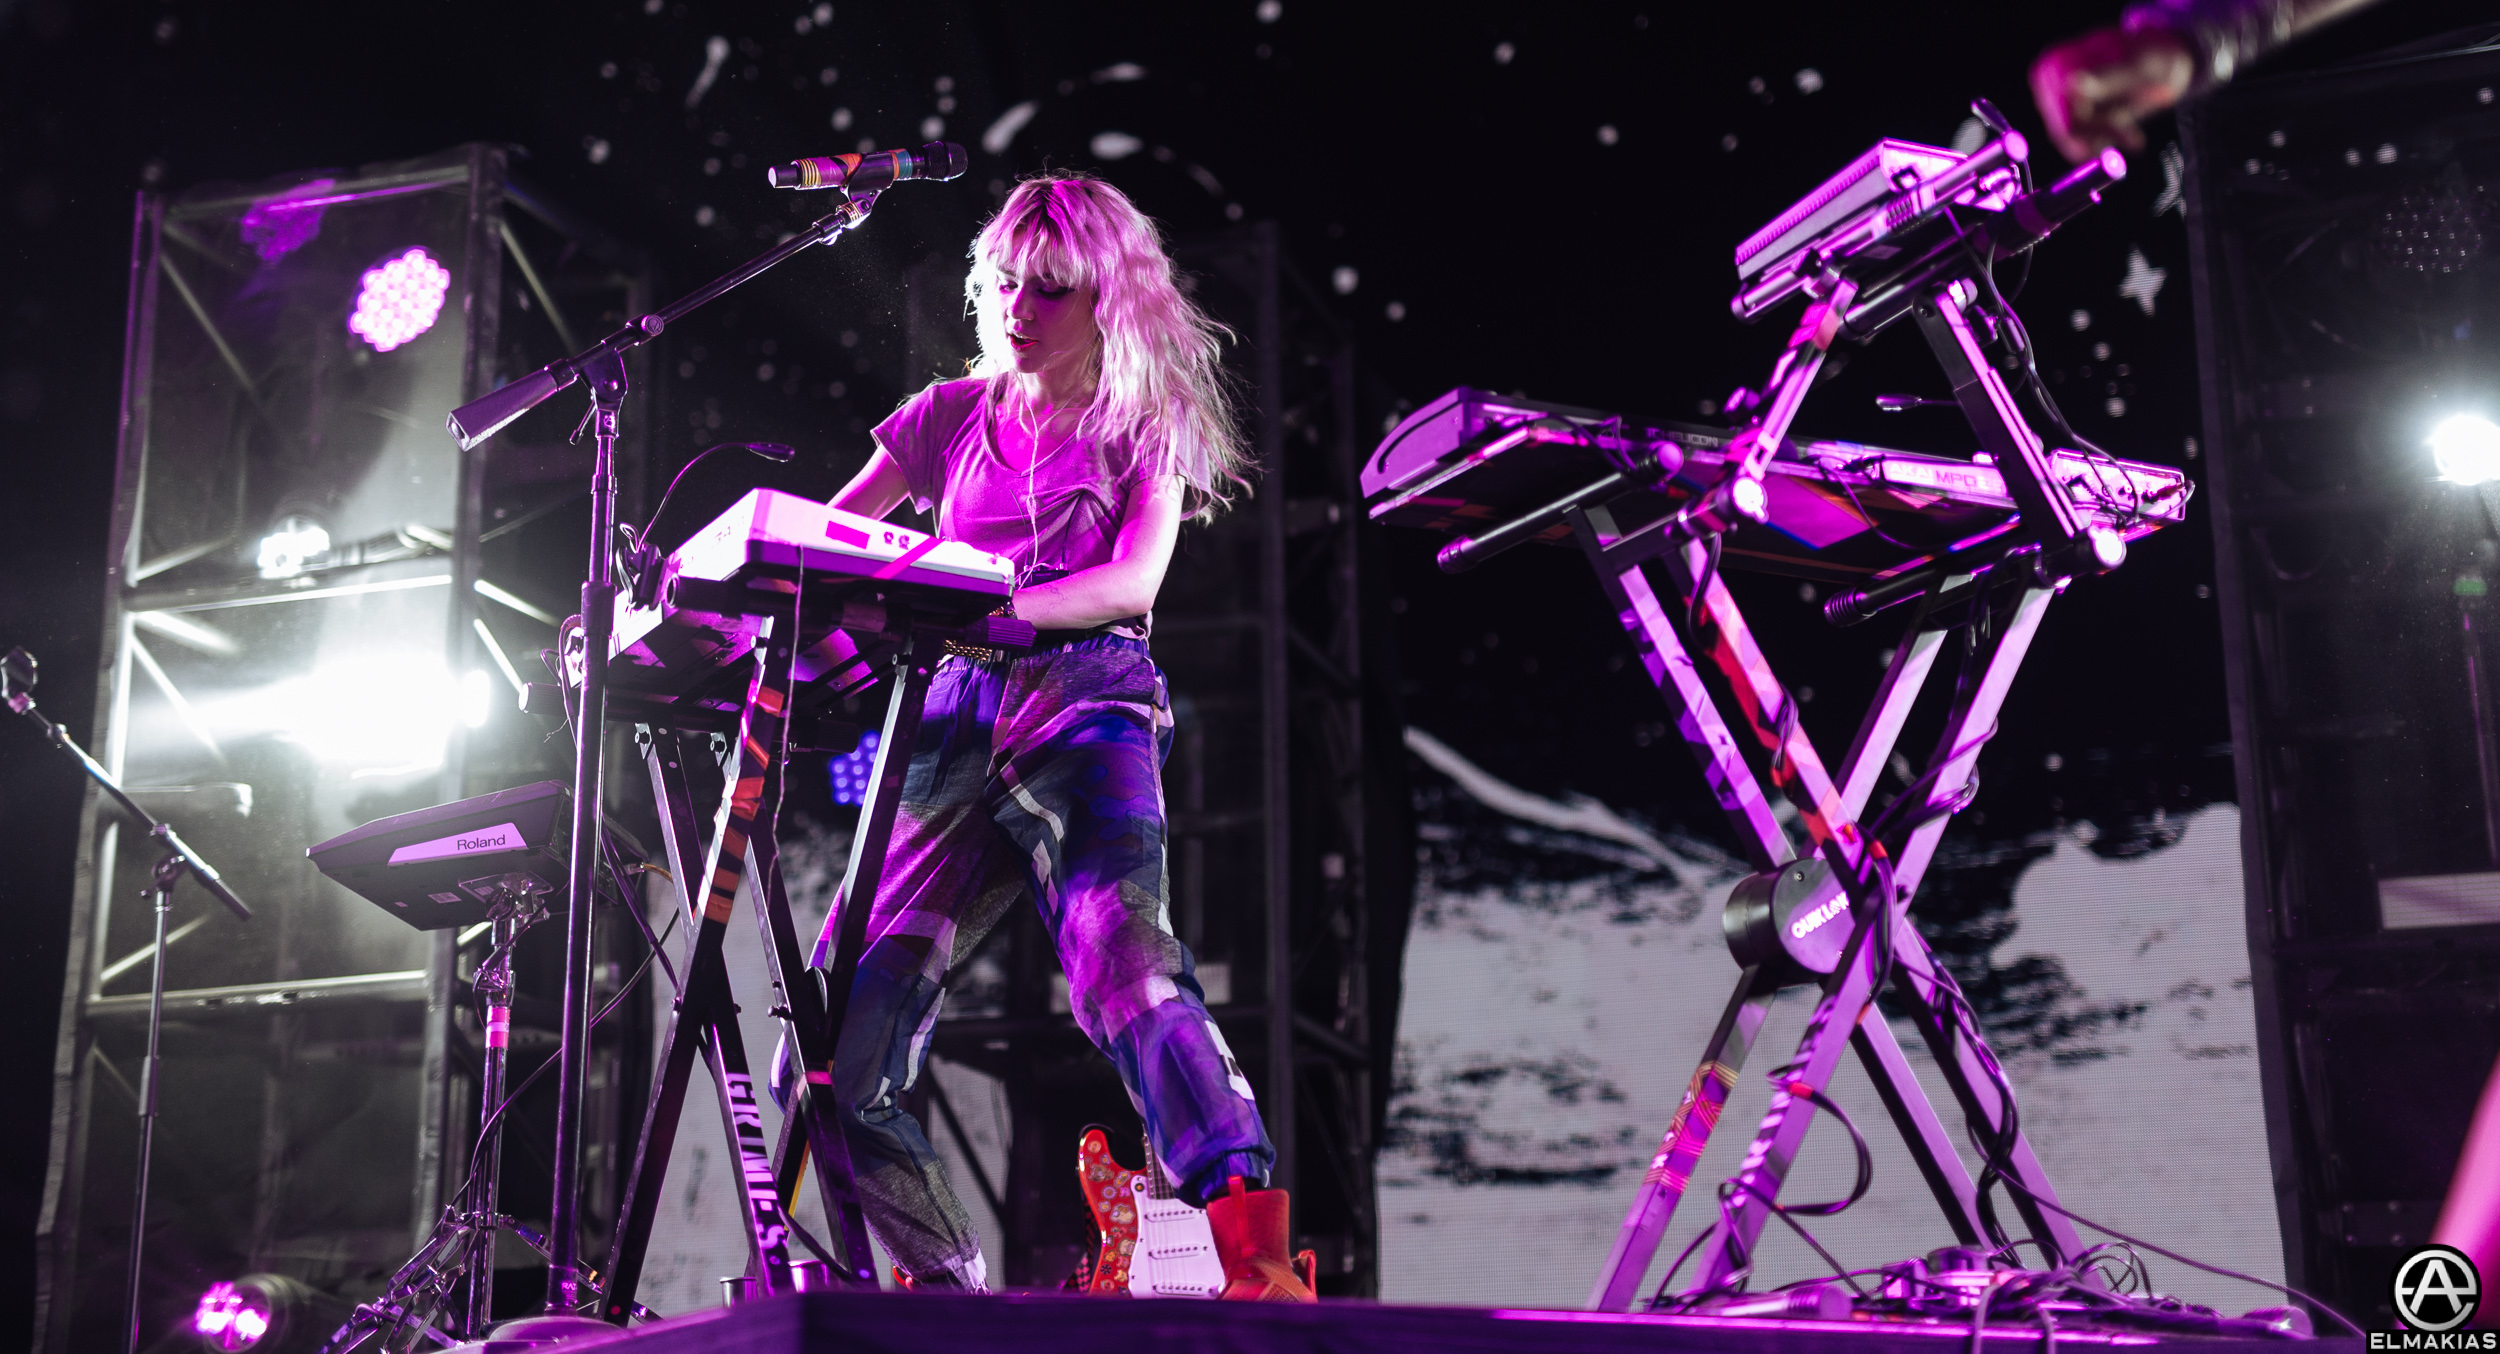 Grimes at Coachella 2016 by Adam Elmakias